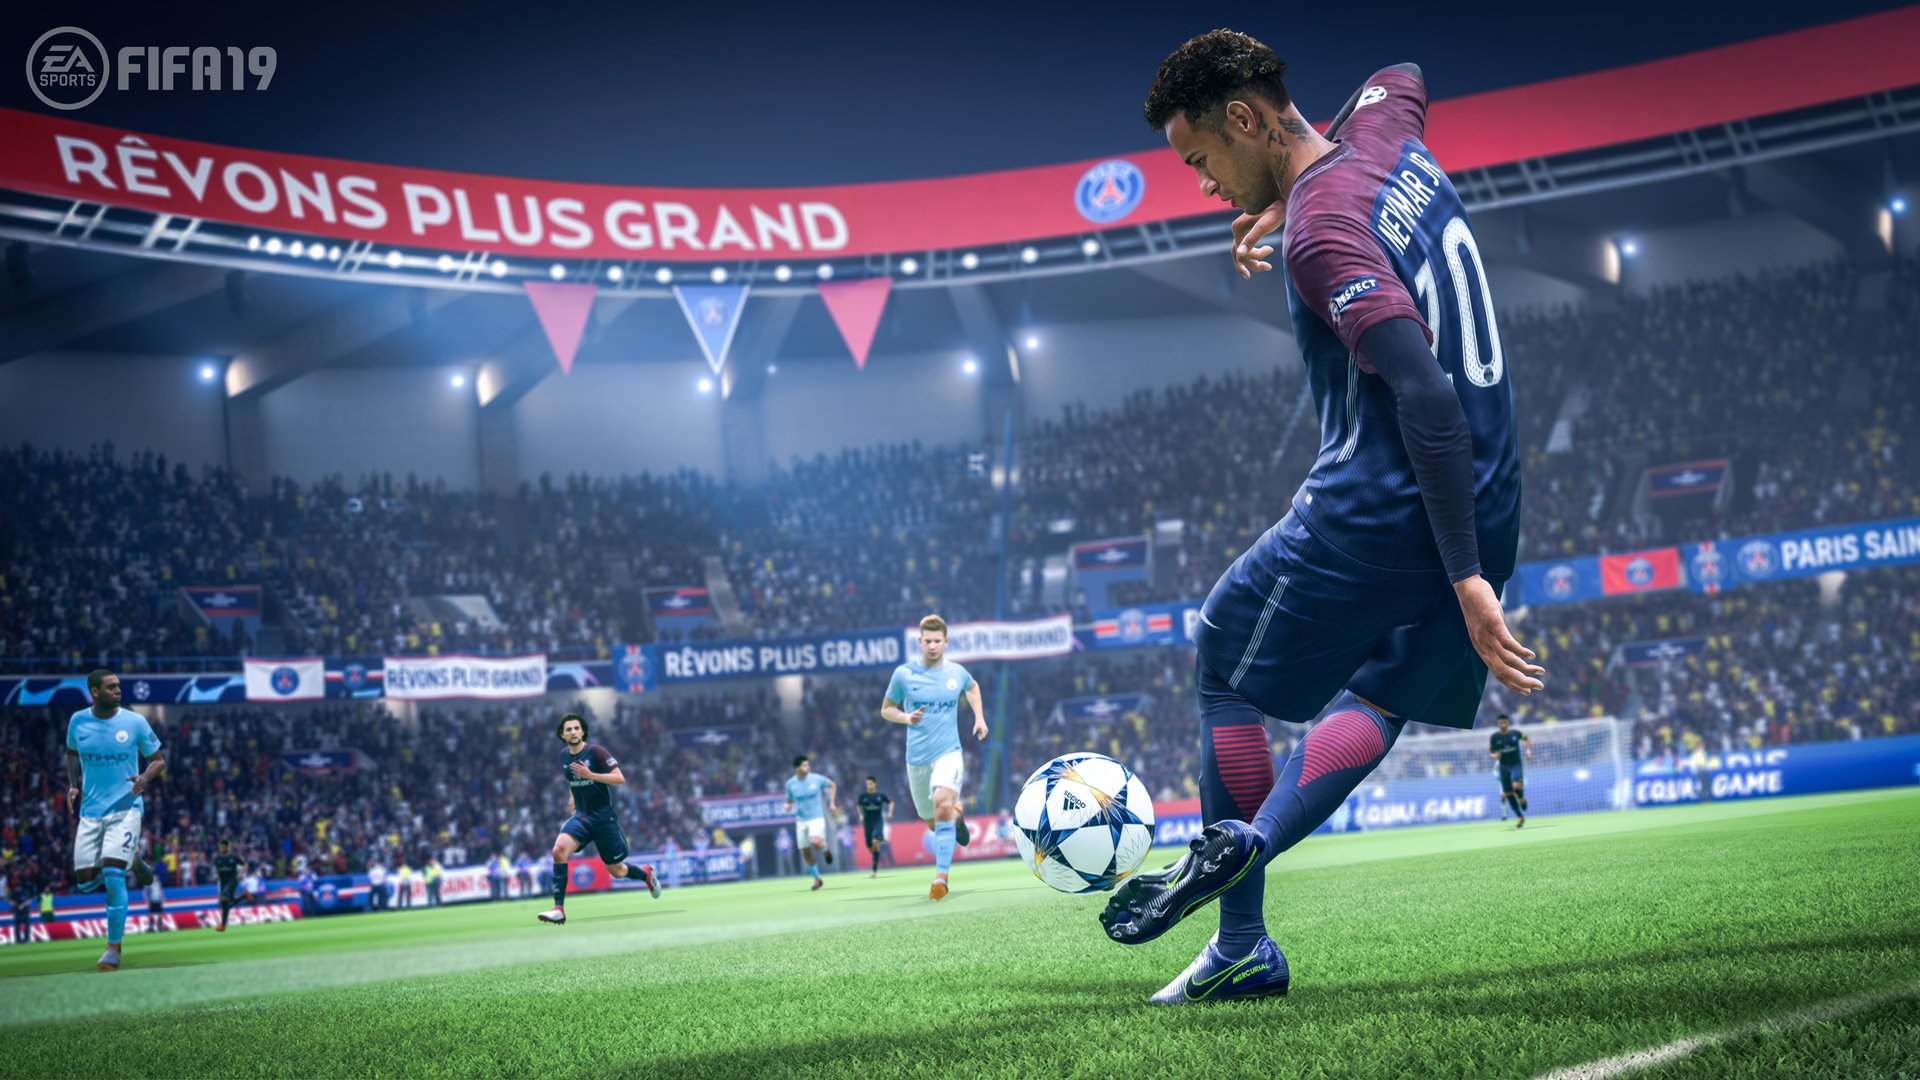 FIFA 19 CHAMPIONS LEAGUE RELEASE DATE DETAILS QUICKSTOPHICKS FIFA 19 ROAD TO GLORY RTG